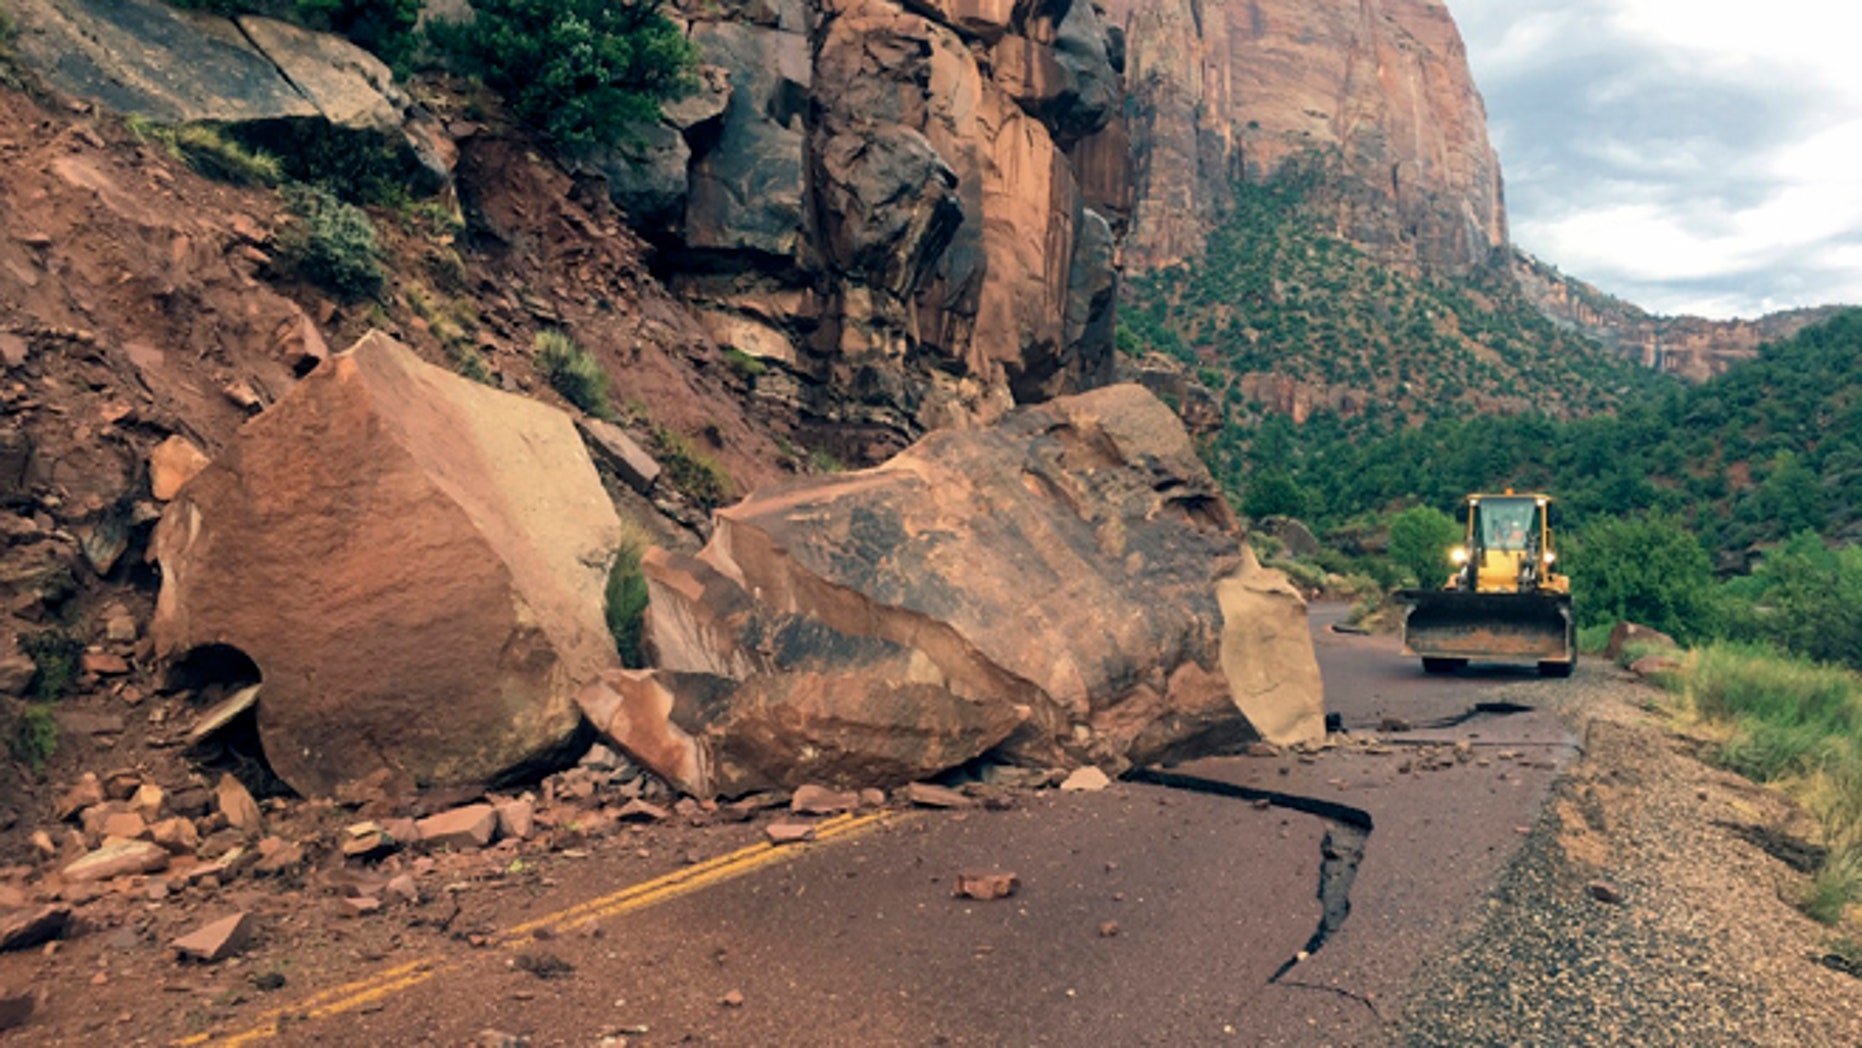 This Wednesday, Aug. 10, 2016 photo provided by the National Park Service shows the Zion- Mount Carmel Highway, State Route 9 closed, in Zion National Park after a boulder tumbled onto the roadway.